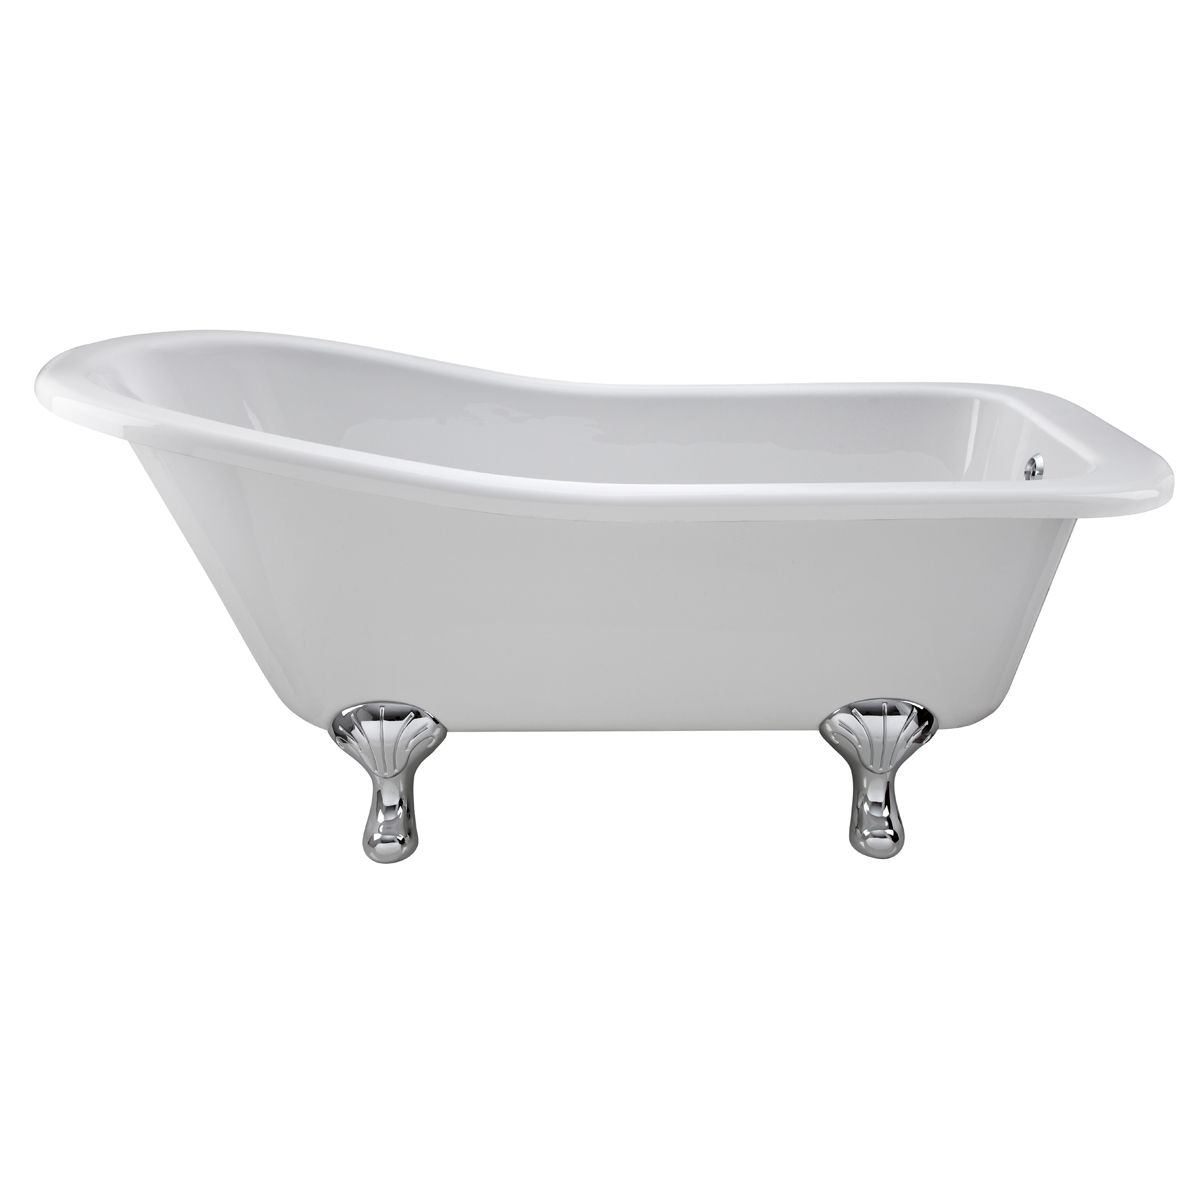 Hudson Reed Kensington Freestanding Slipper Bath with Corbel Leg Set